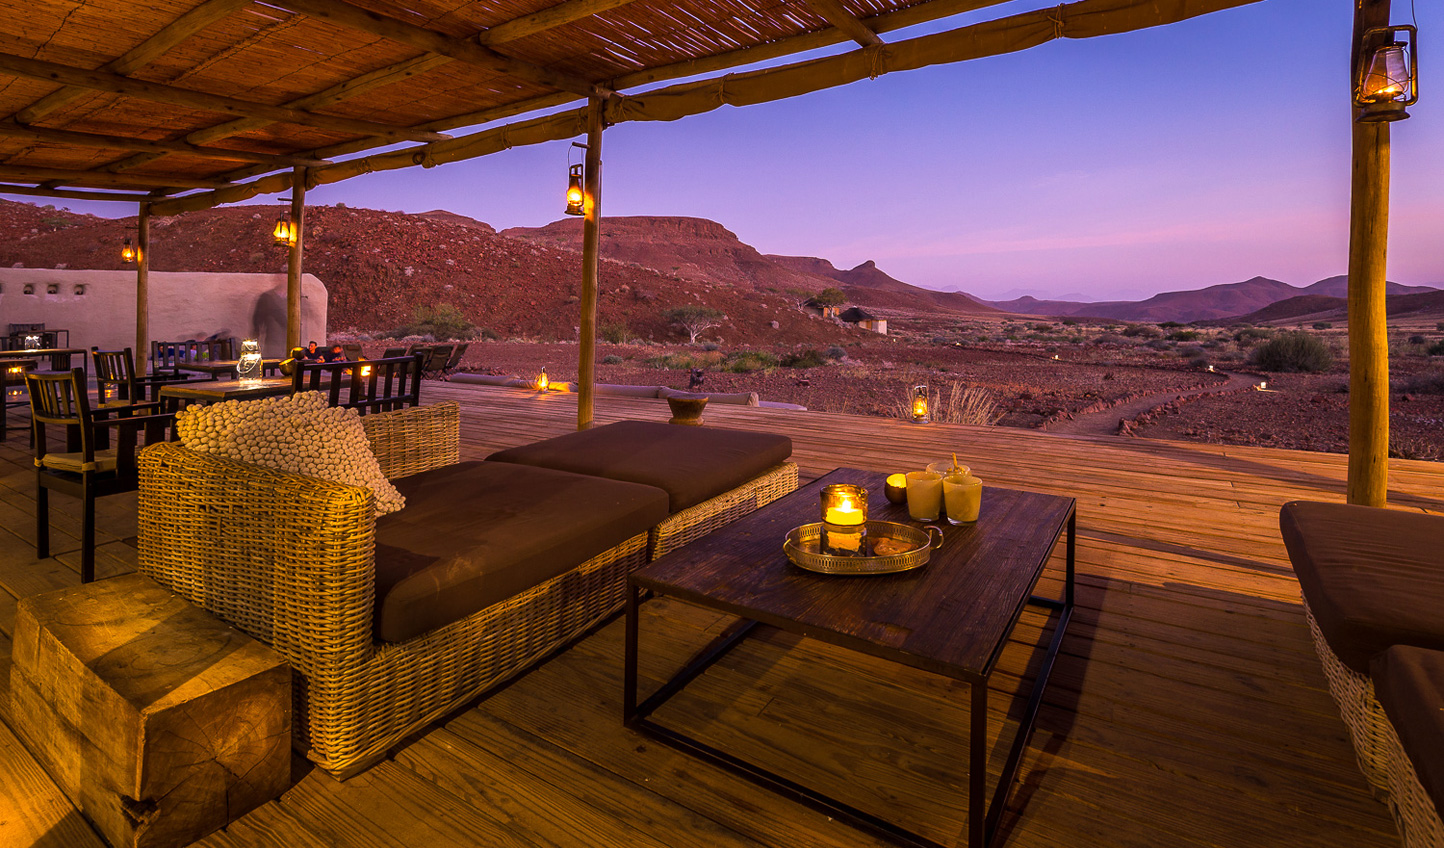 Curl up with an aperitif and watch day fade to night at Damaraland Camp